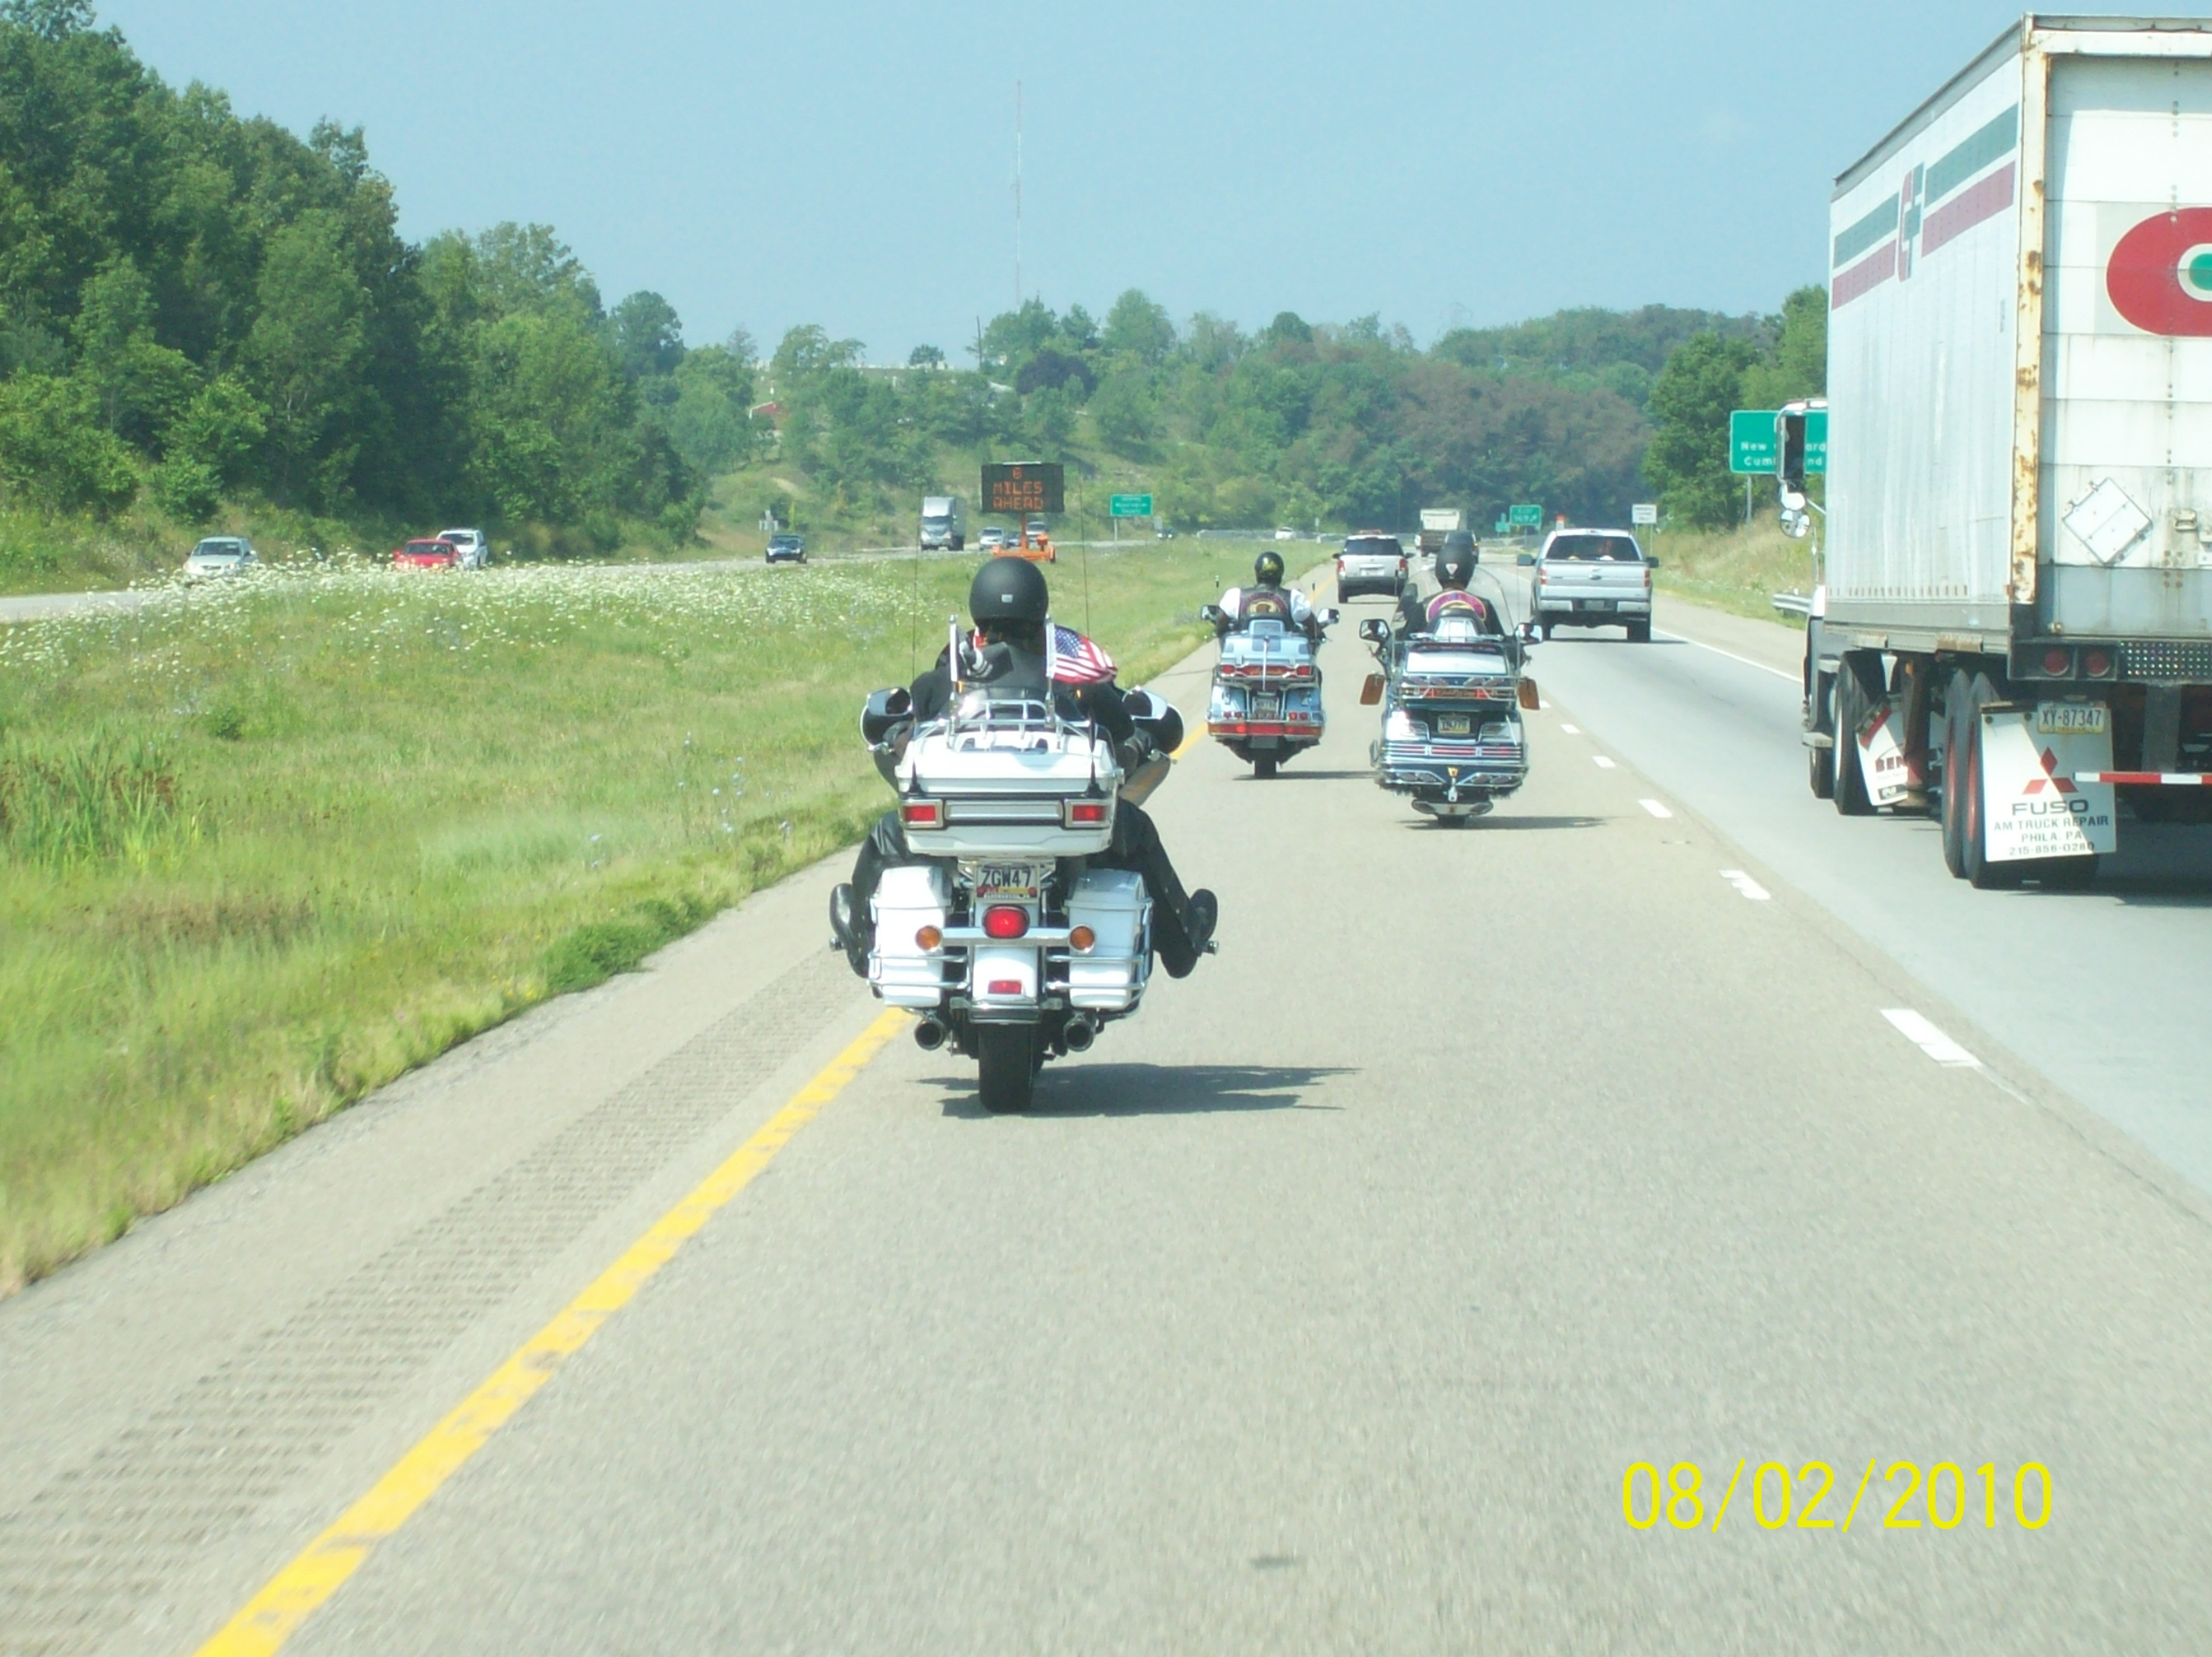 Harrisburg motorcycle club